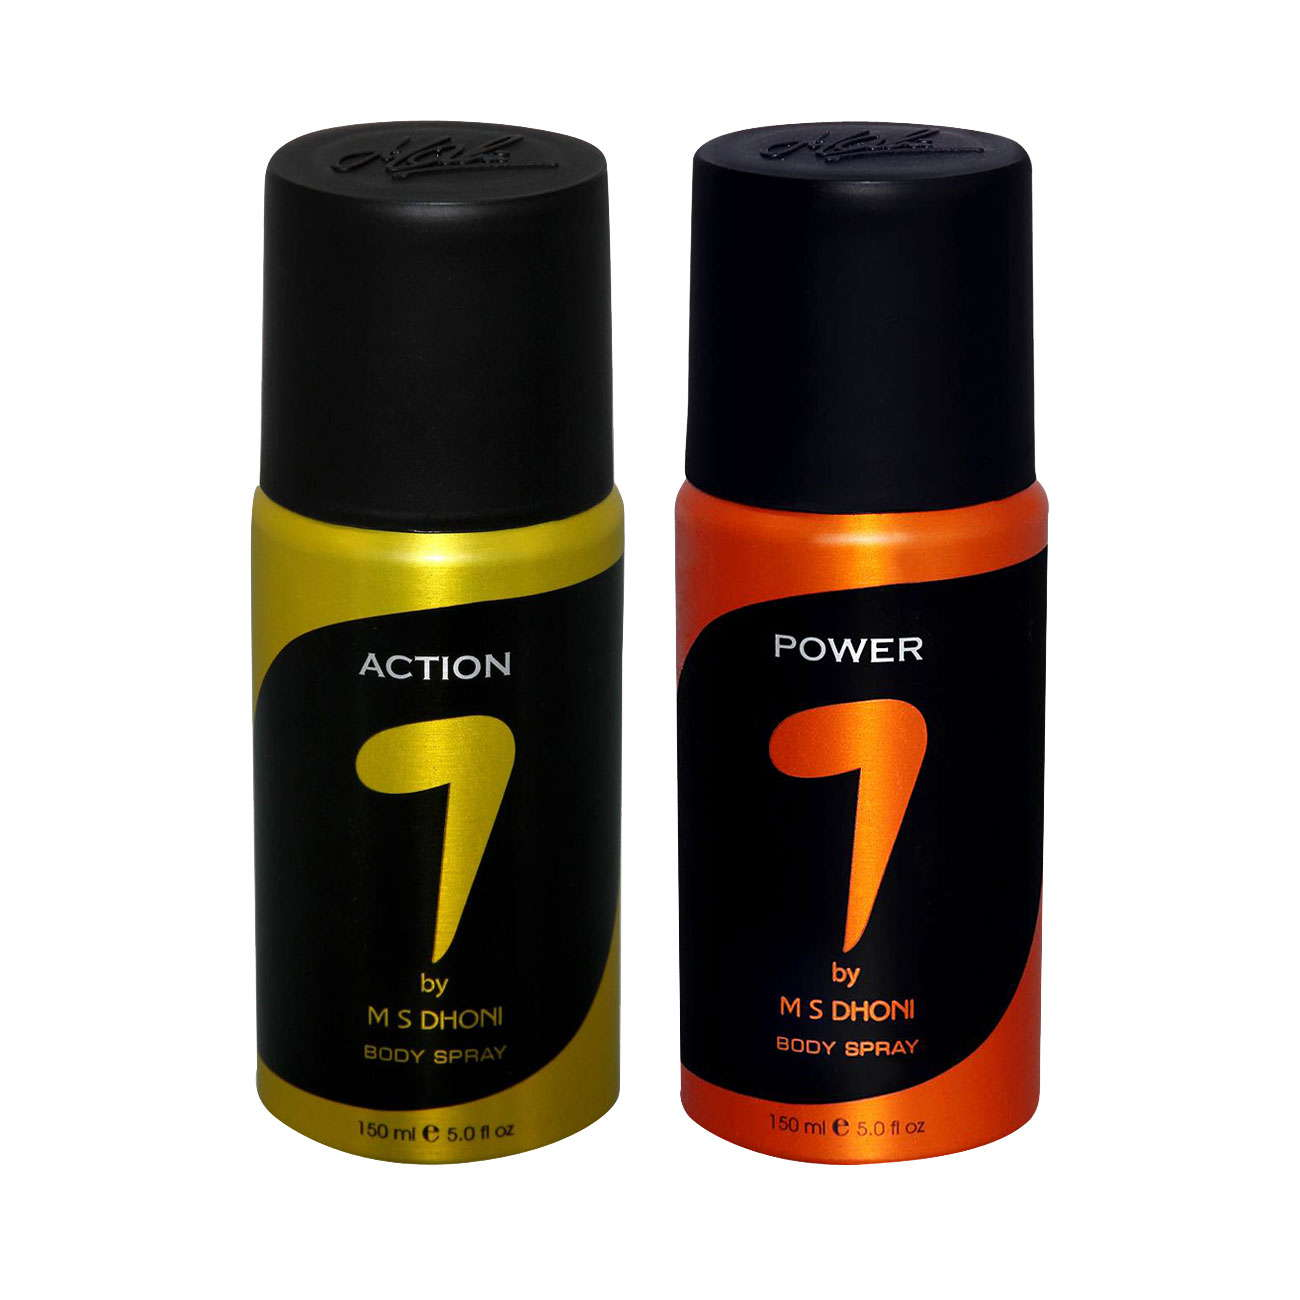 7 by MS Dhoni Action, Power  Pack of 2 Deodorants